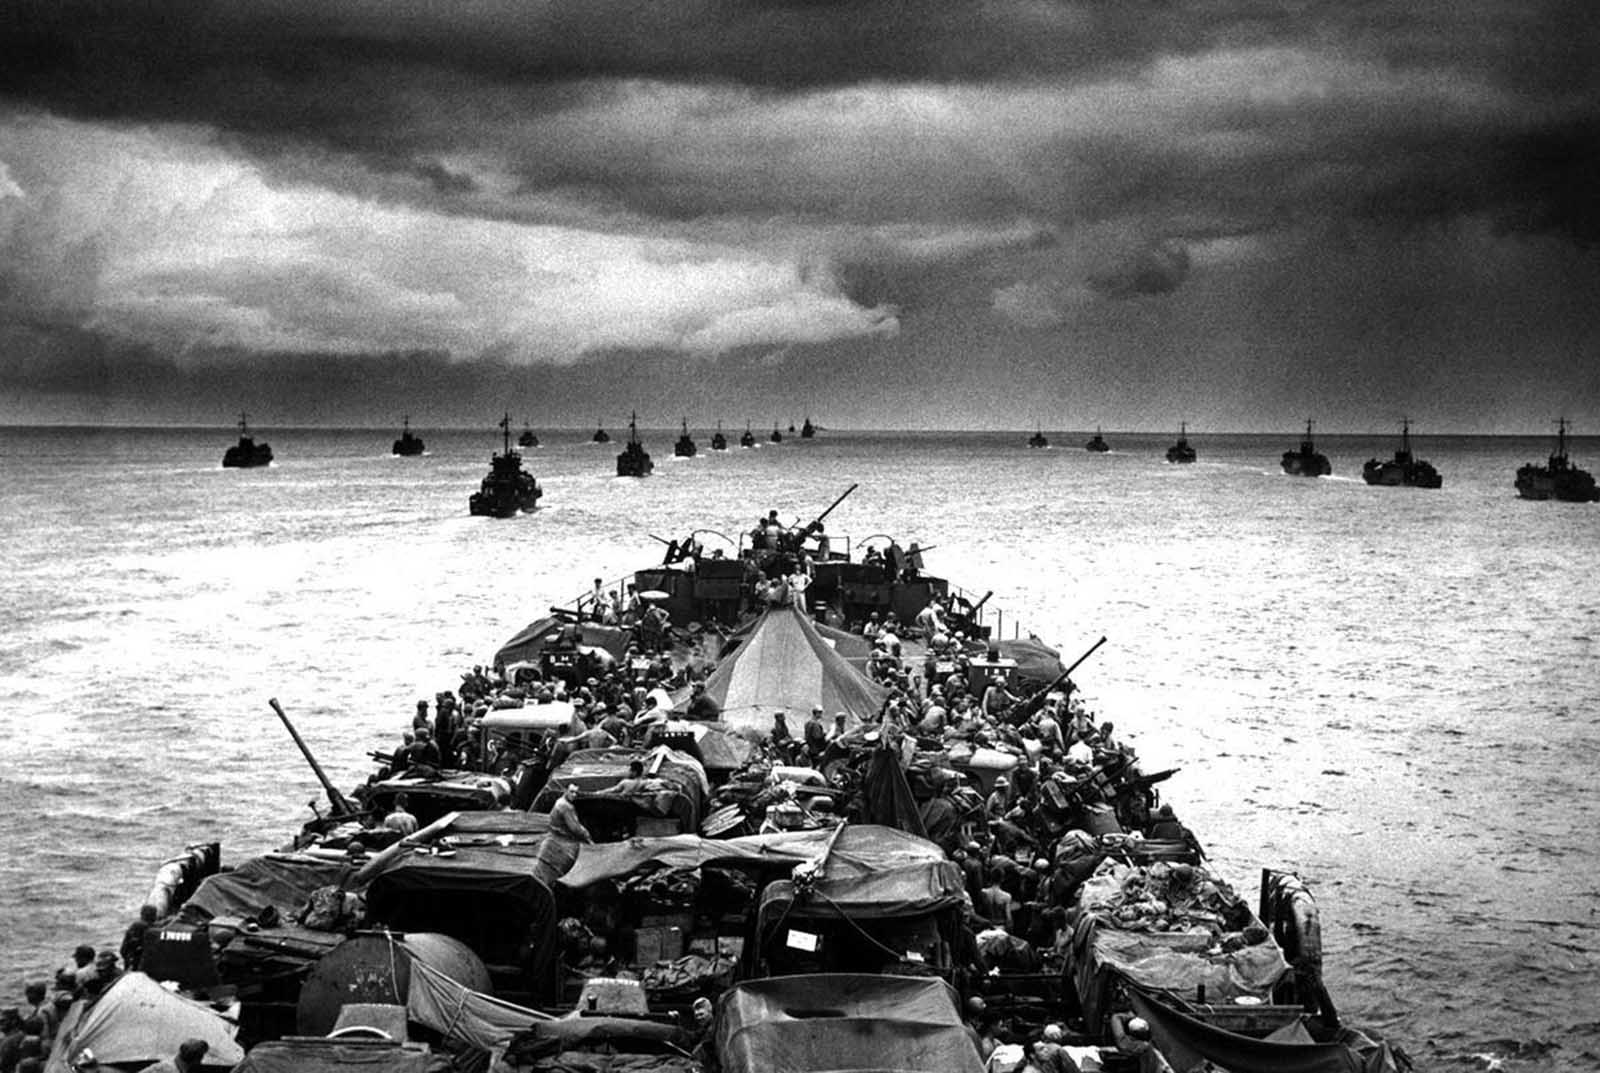 Columns of troop-packed LCIs (Landing Craft, Infantry) trail in the wake of a Coast Guard-manned LST (Landing Ship, Tank) en route to the invasion of Cape Sansapor, New Guinea in 1944.